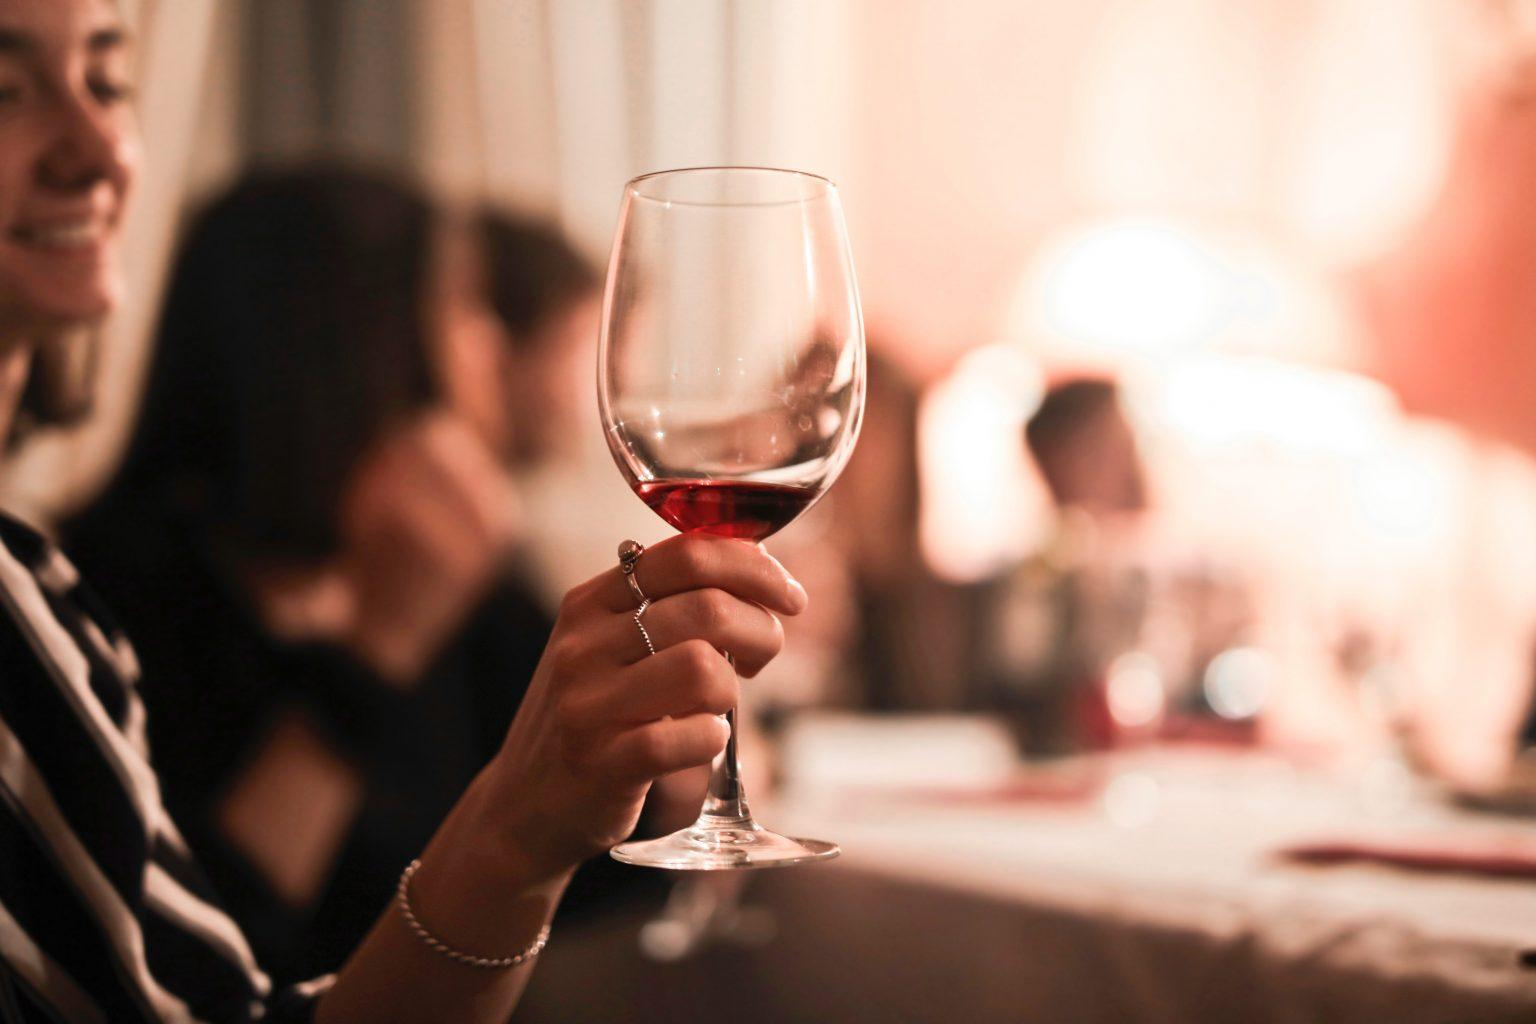 spend-time-drinking-wine-by-yourself